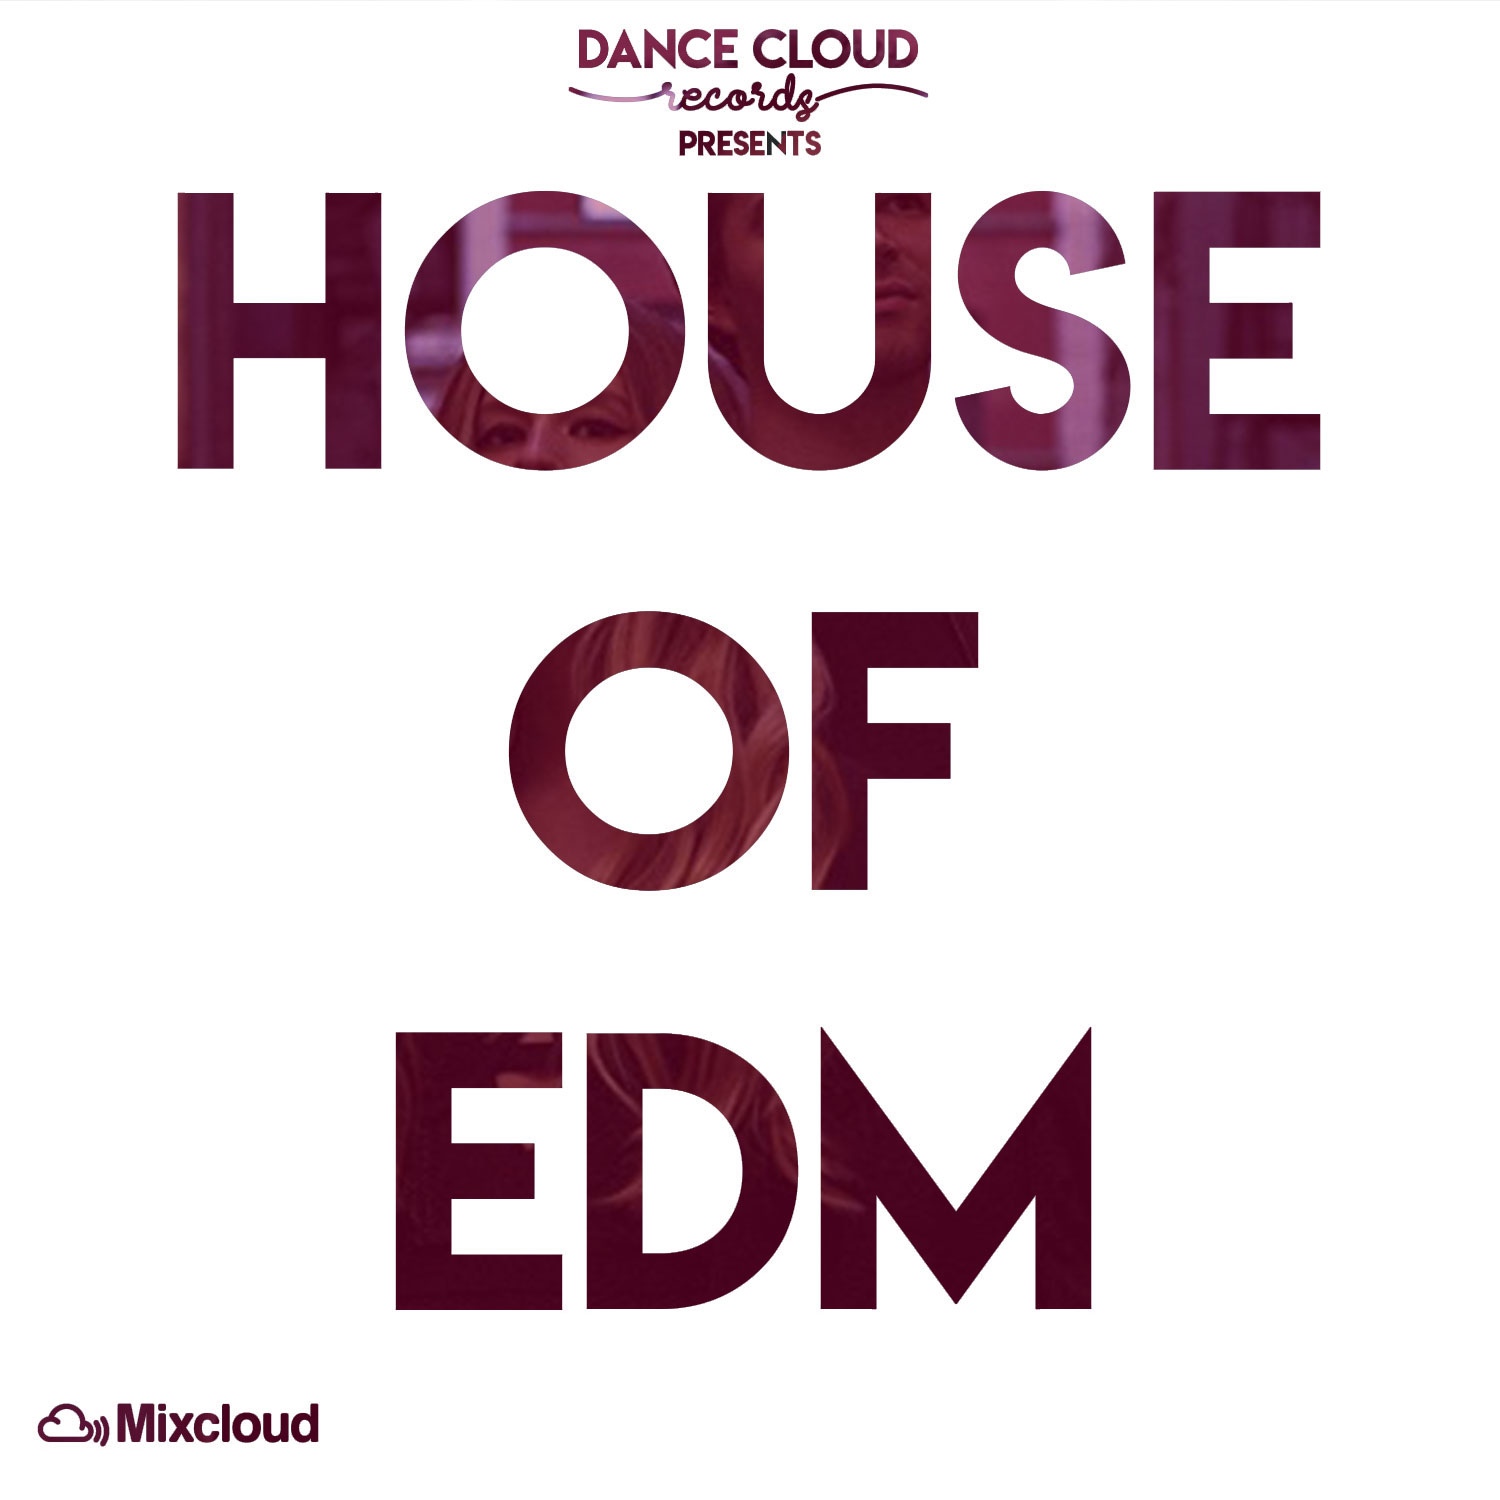 """House of EDM"" premiers on Mixcloud."